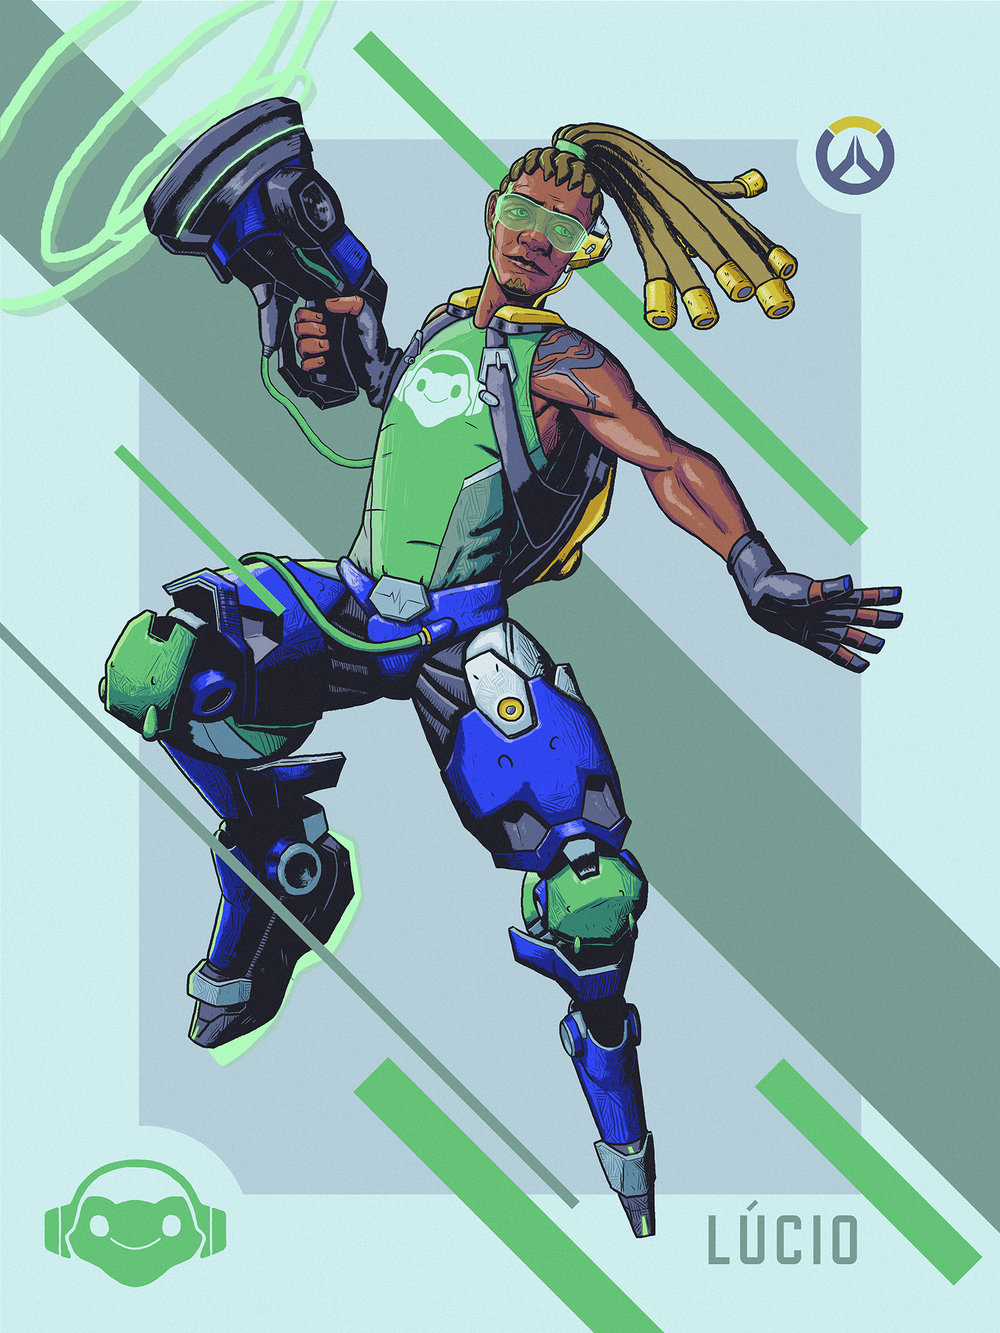 Lucio Poster Final_for screens.jpg